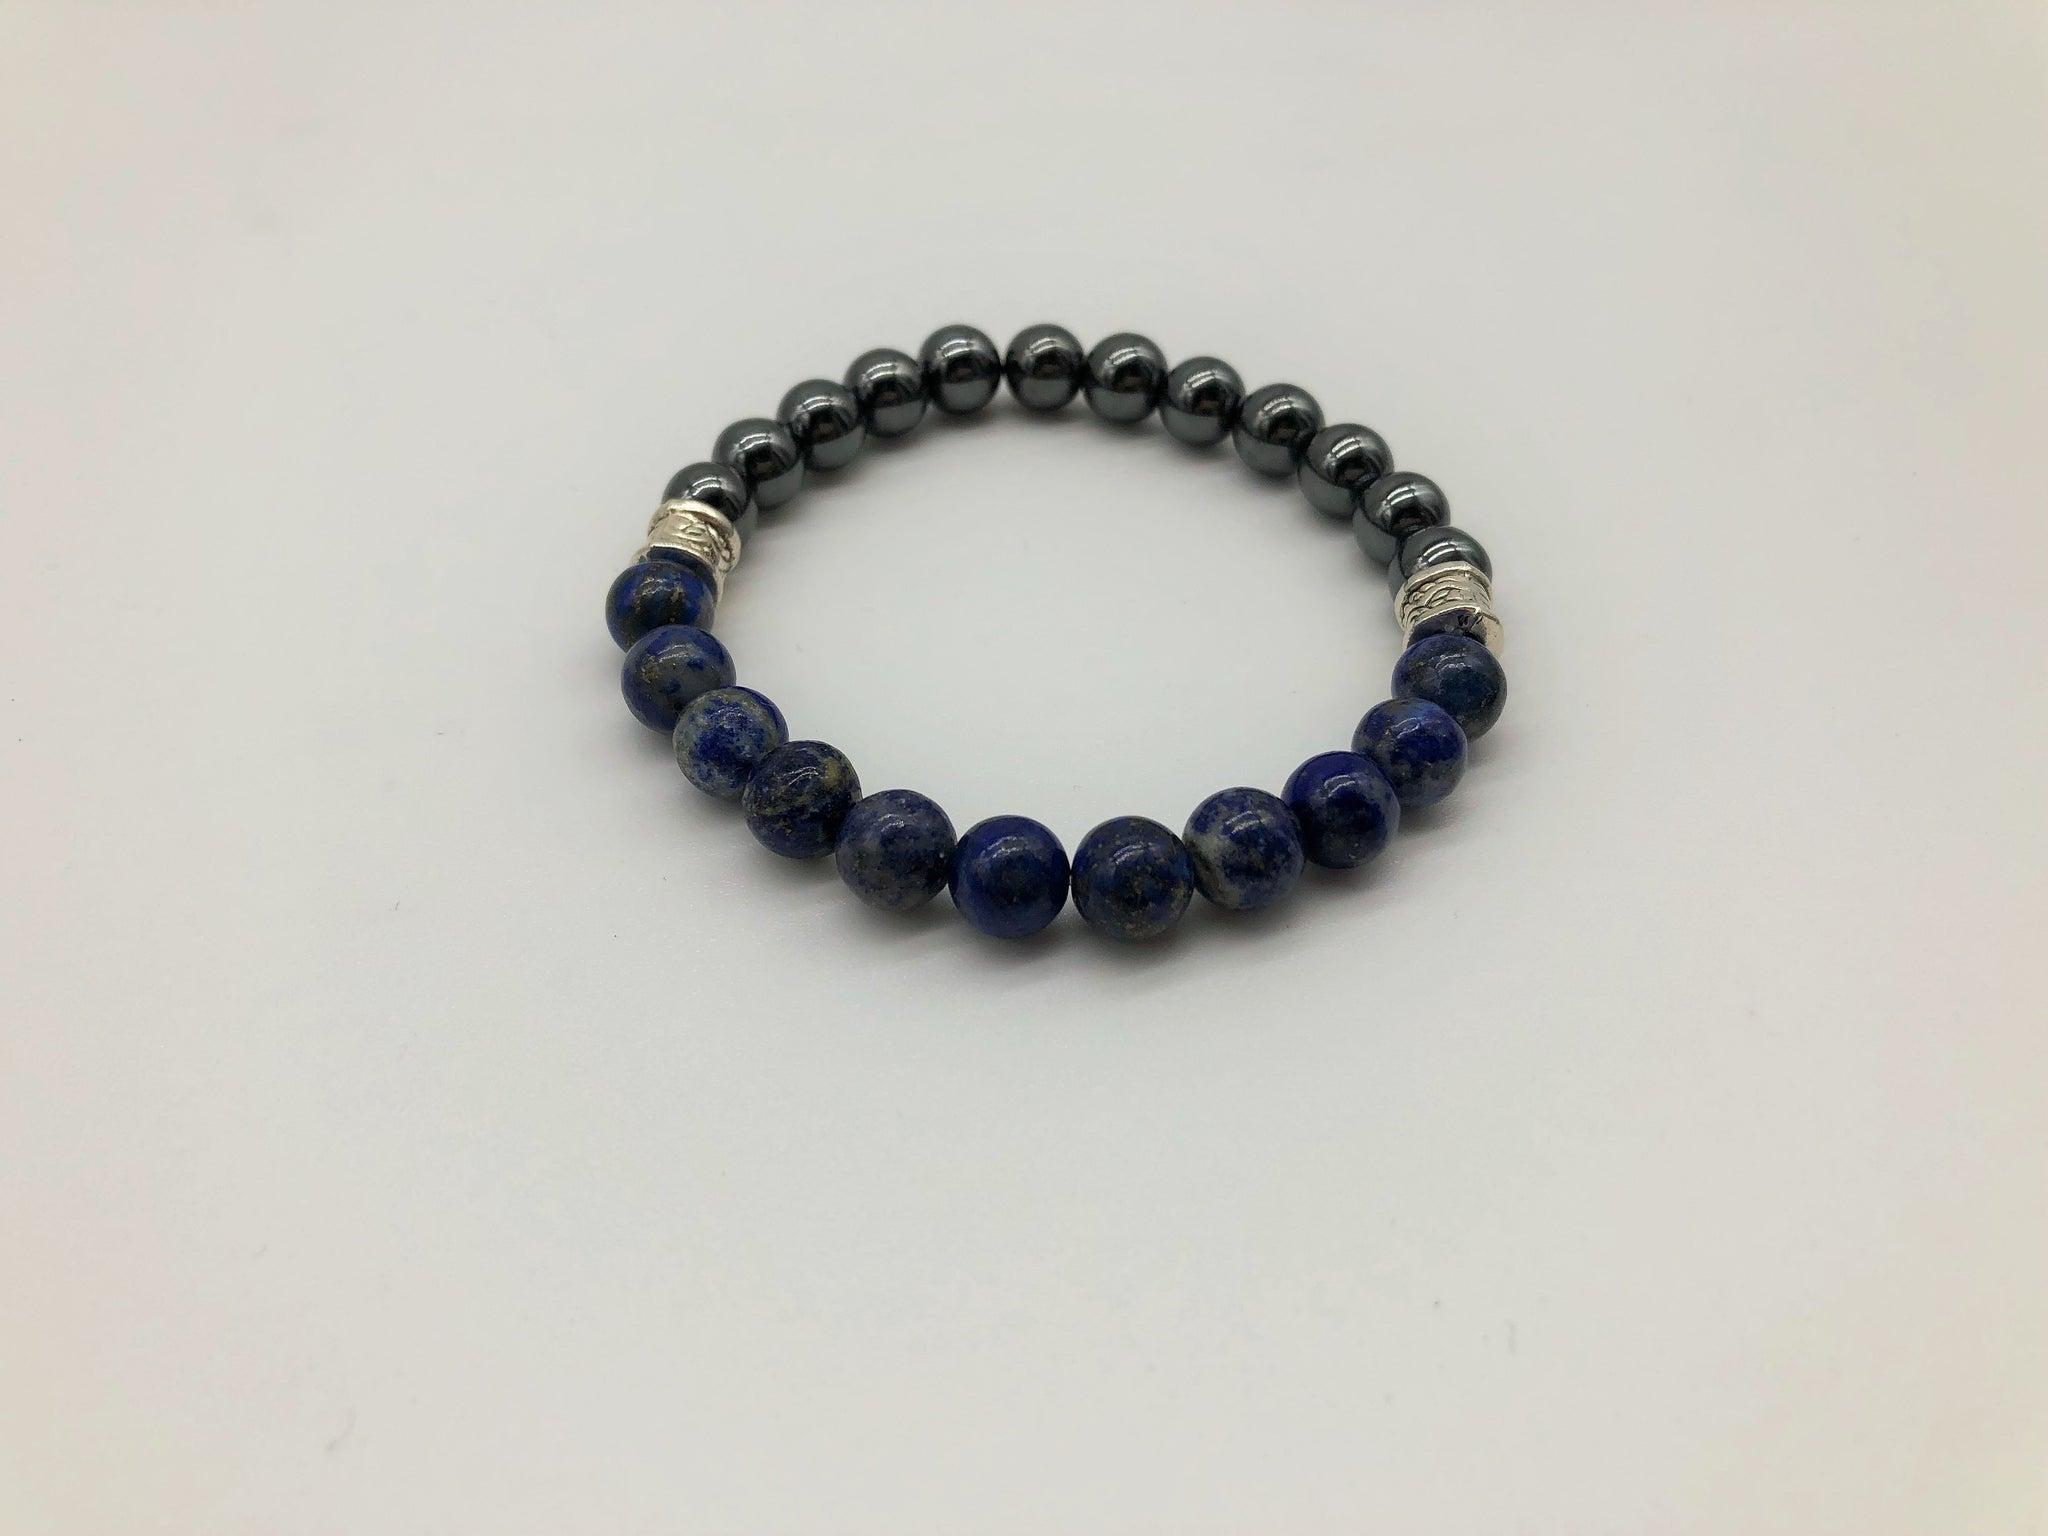 Gentleman's Lapis Lazuli & Hematite Bracelet promoting Positivity, Happiness & Emotionally Grounding